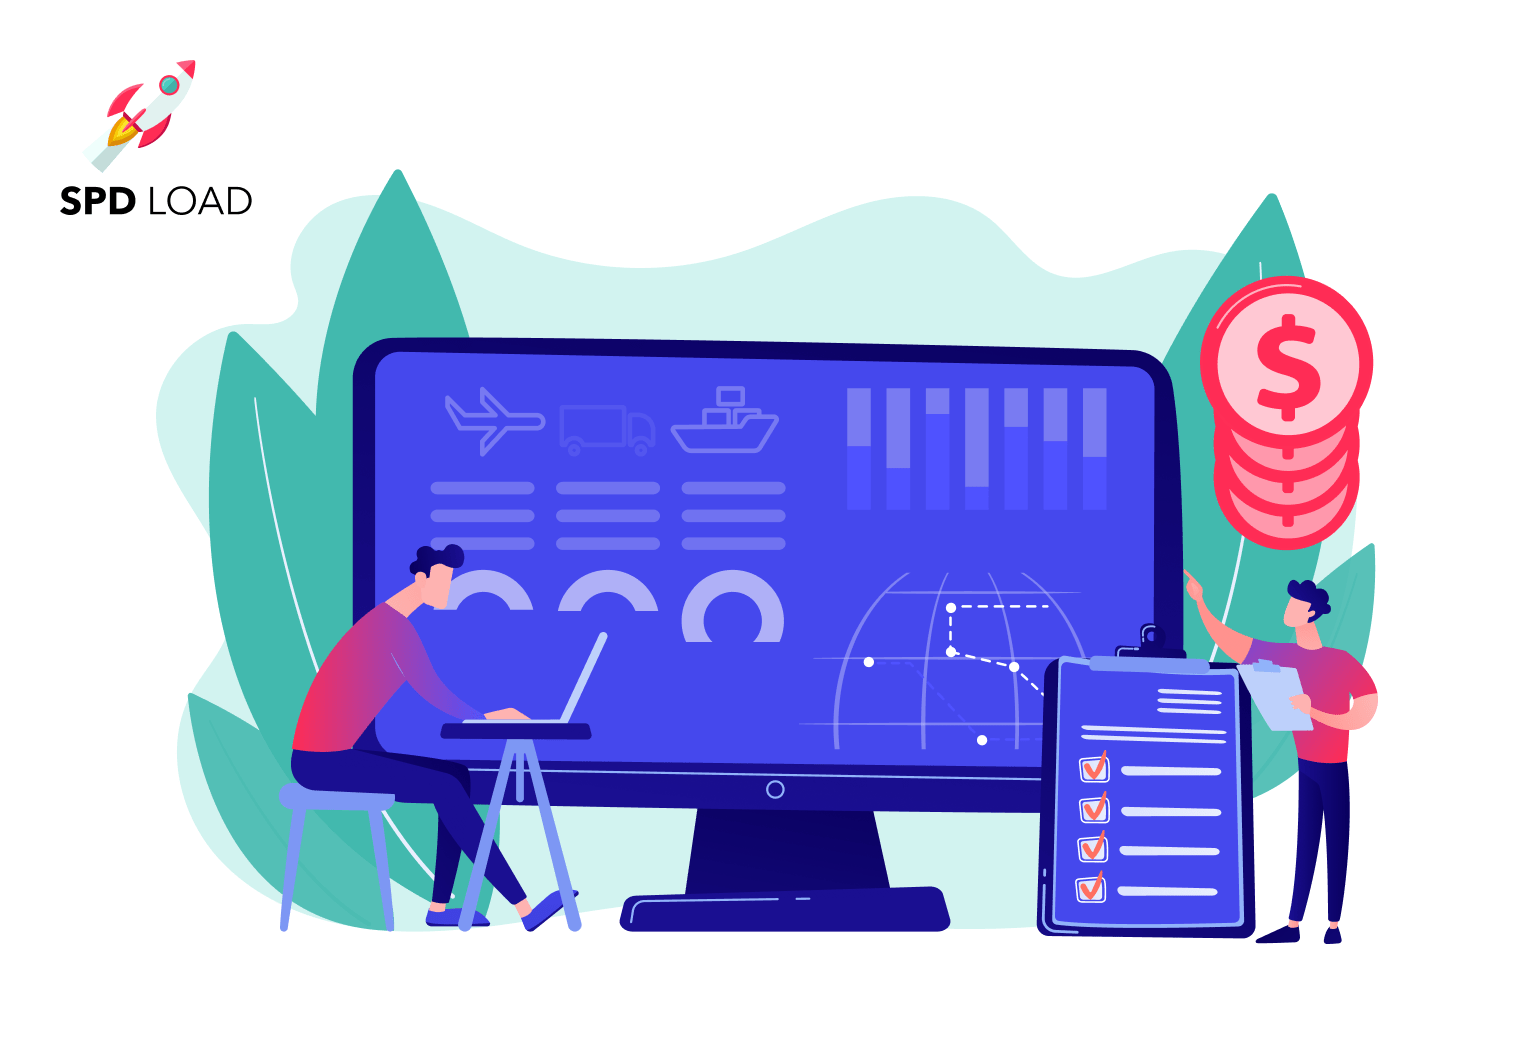 SpdLoad prepared an in-depth guide about the cost of building mvp for startups